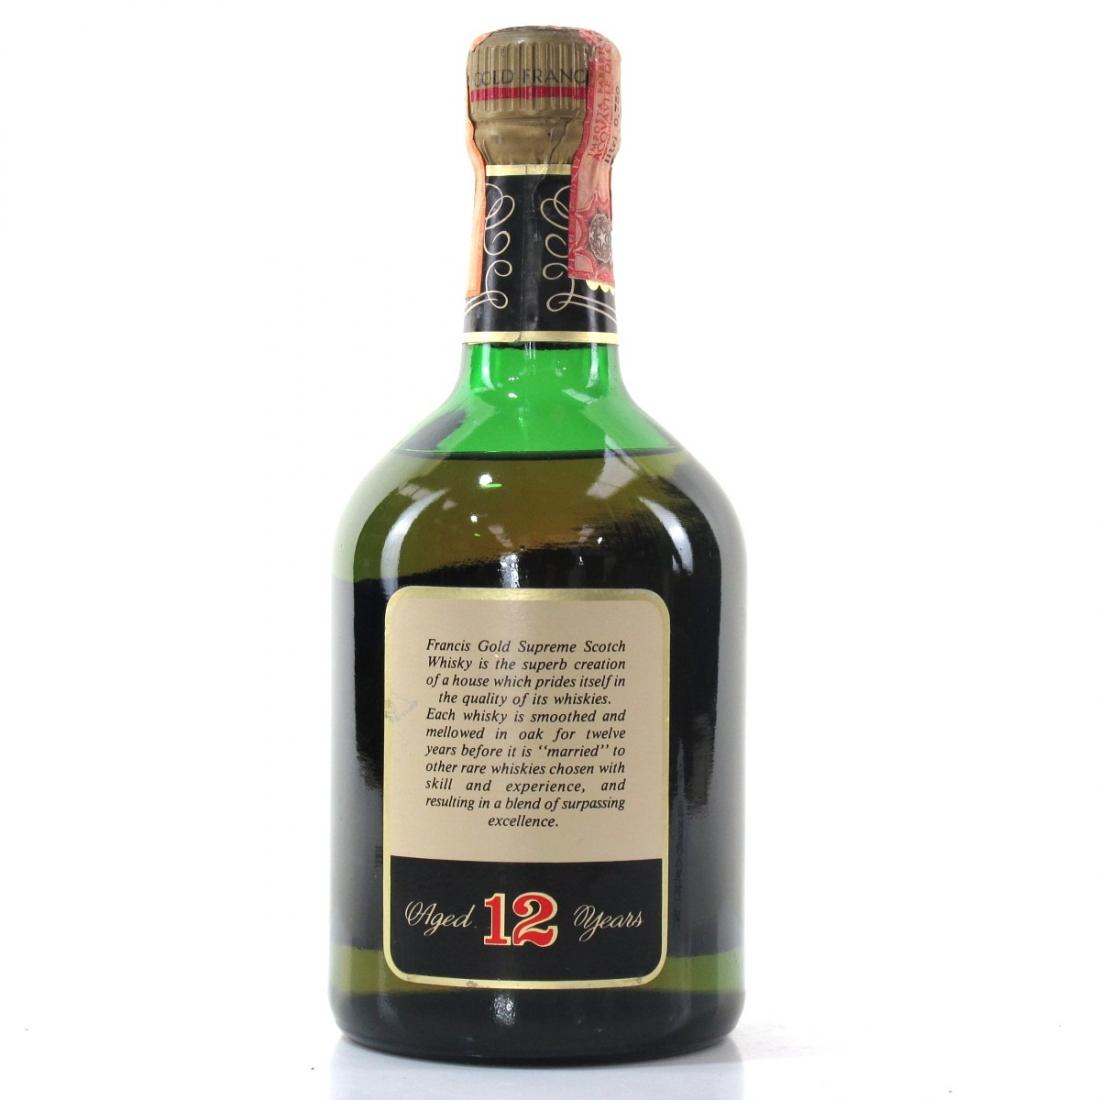 Francis Gold 12 Year Old Scotch Whisky 1970s